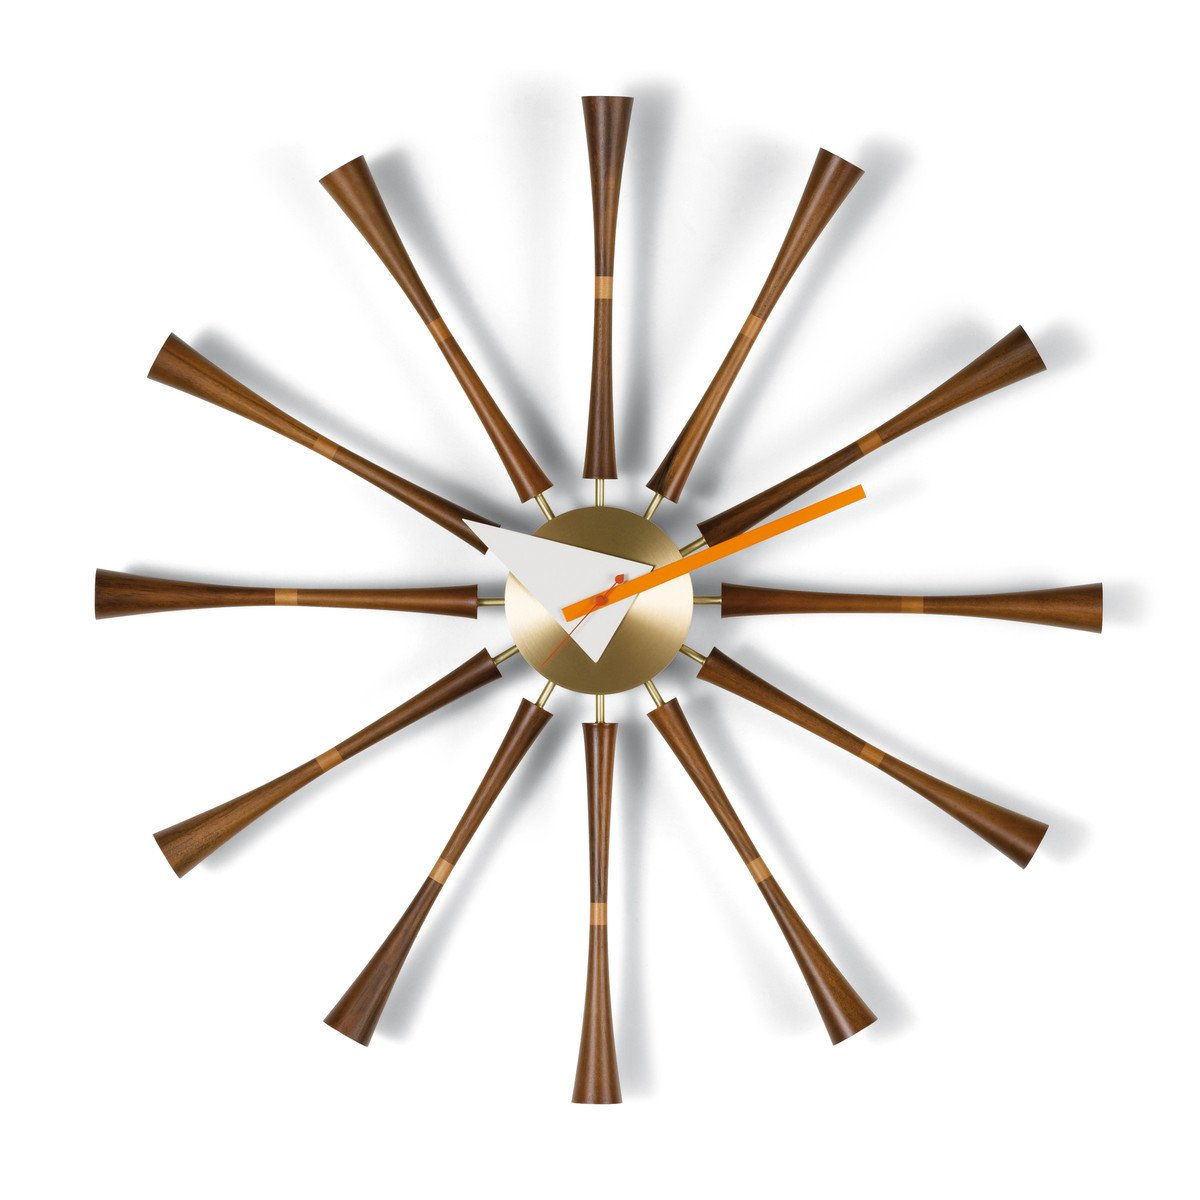 Vitra Nelson Spindle Clock